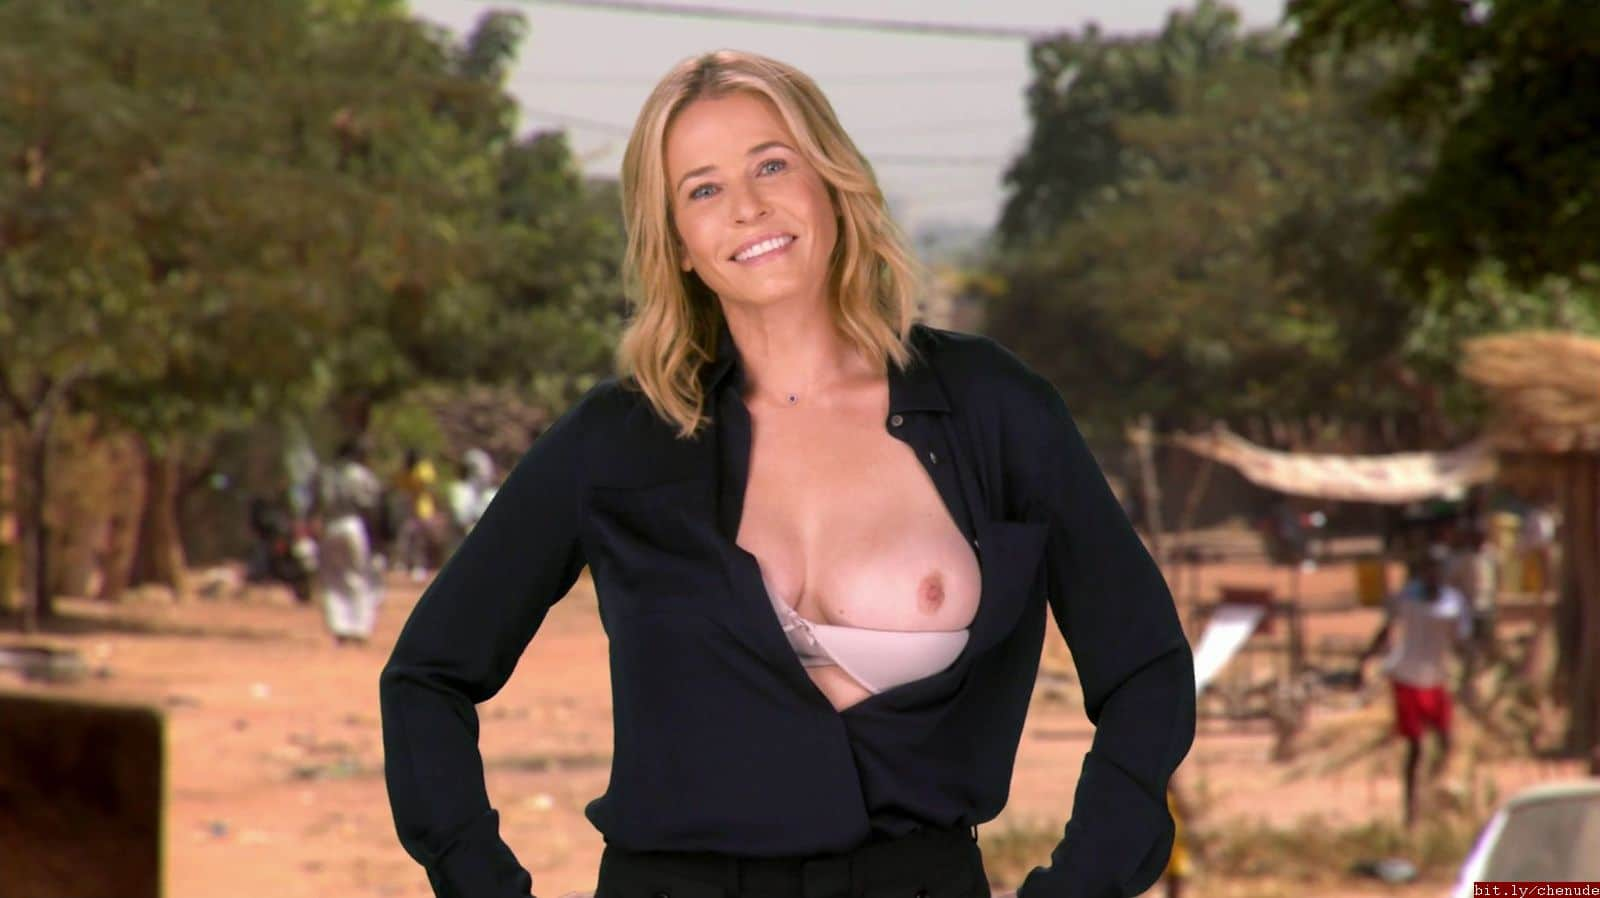 Chelsea handler in chelsea lately 2